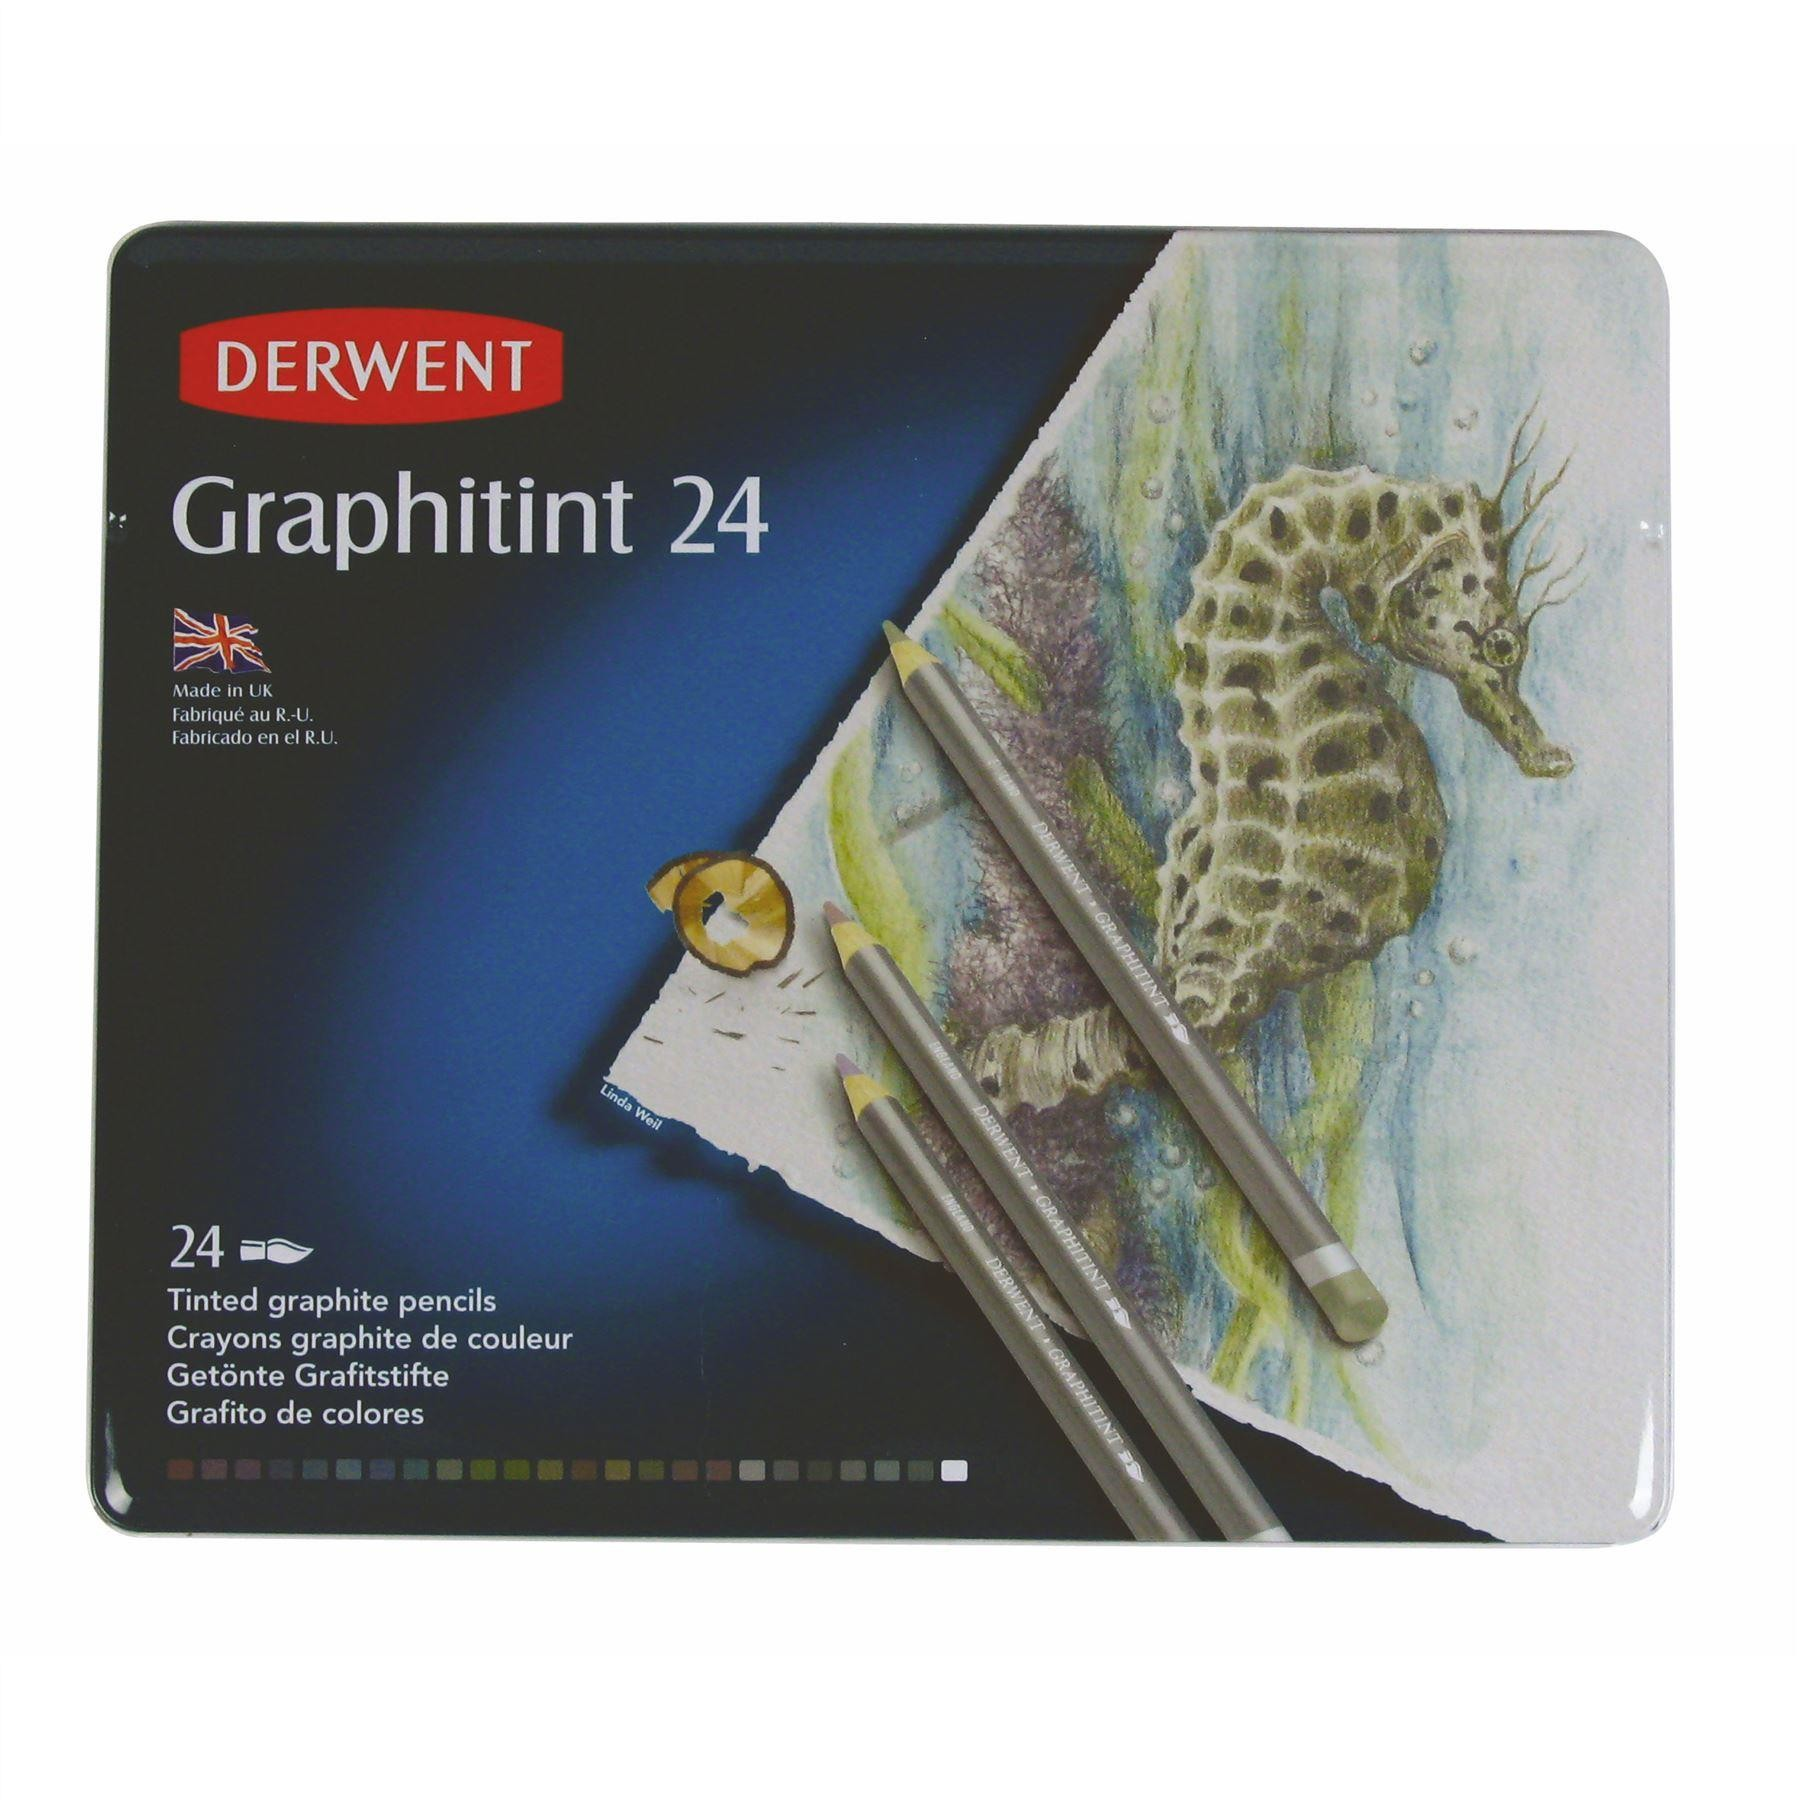 Derwent Graphitint 24 tin